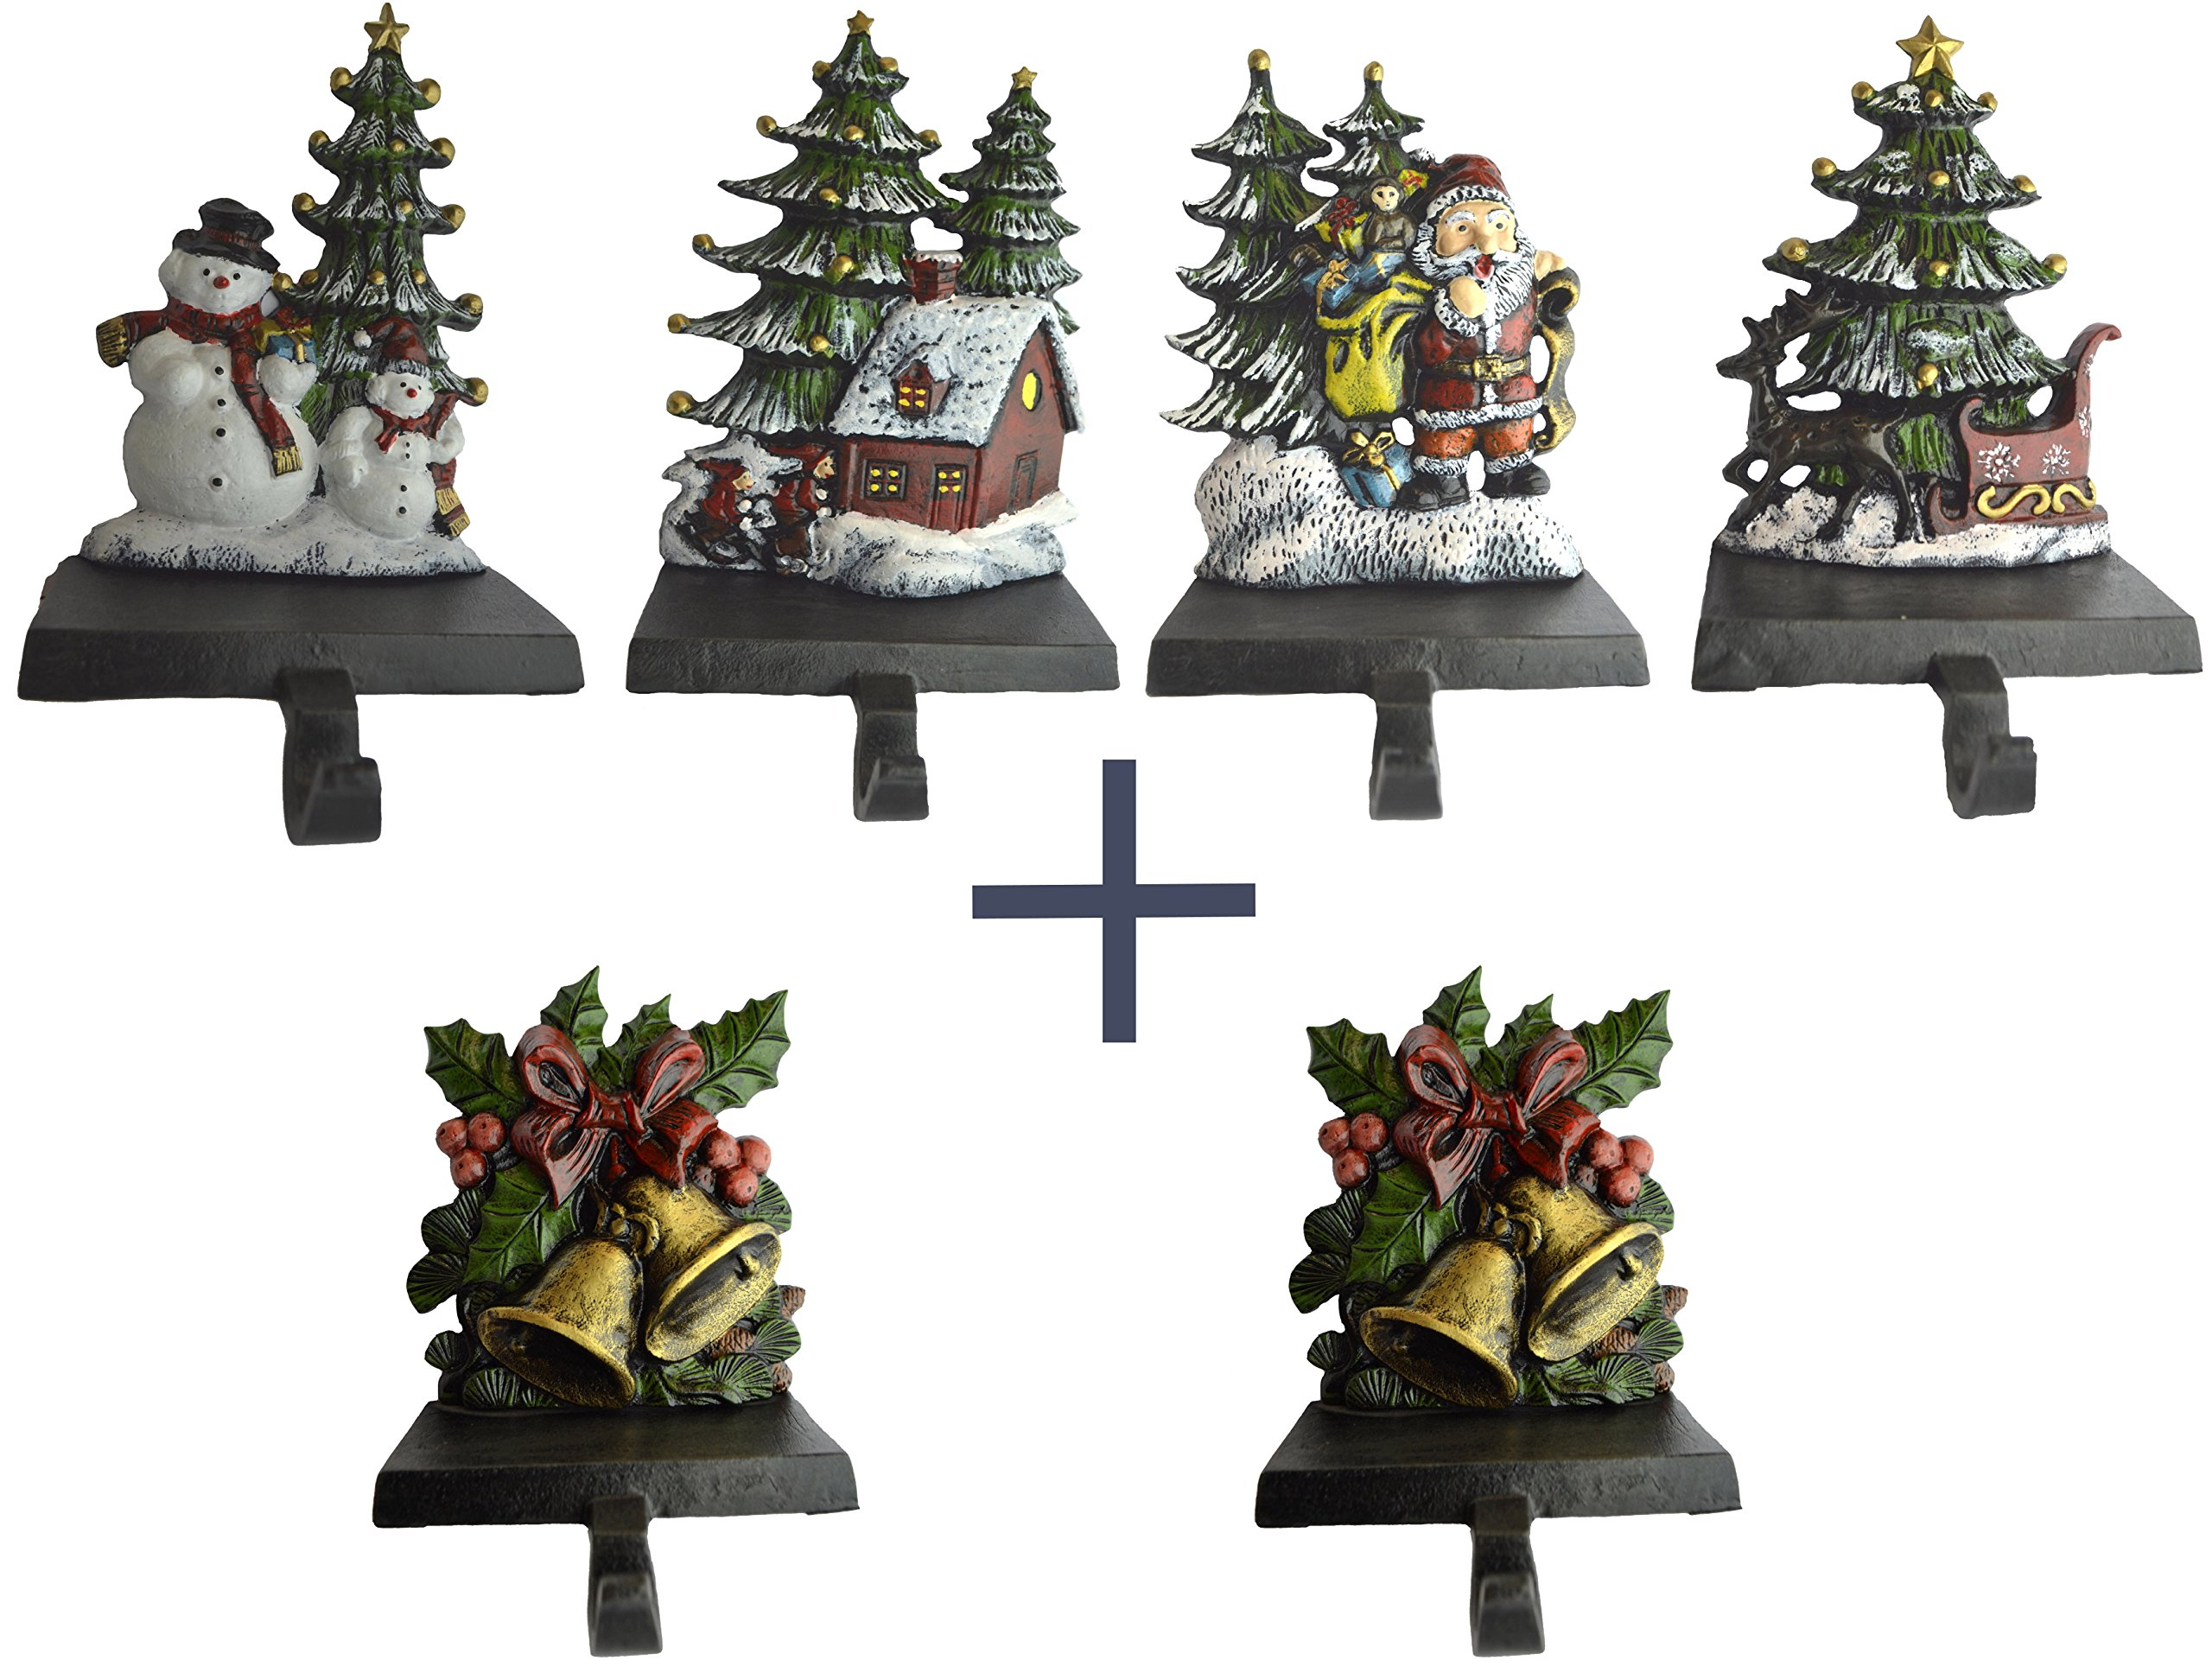 Lulu Decor, 100% cast iron combo Christmas Stocking Holders, set of 6 Pcs, trees with santa, sleigh, house and snowman + 2 Bells, solid appearance, beautiful products, each weighs 3 lb (Combo Deal HB)